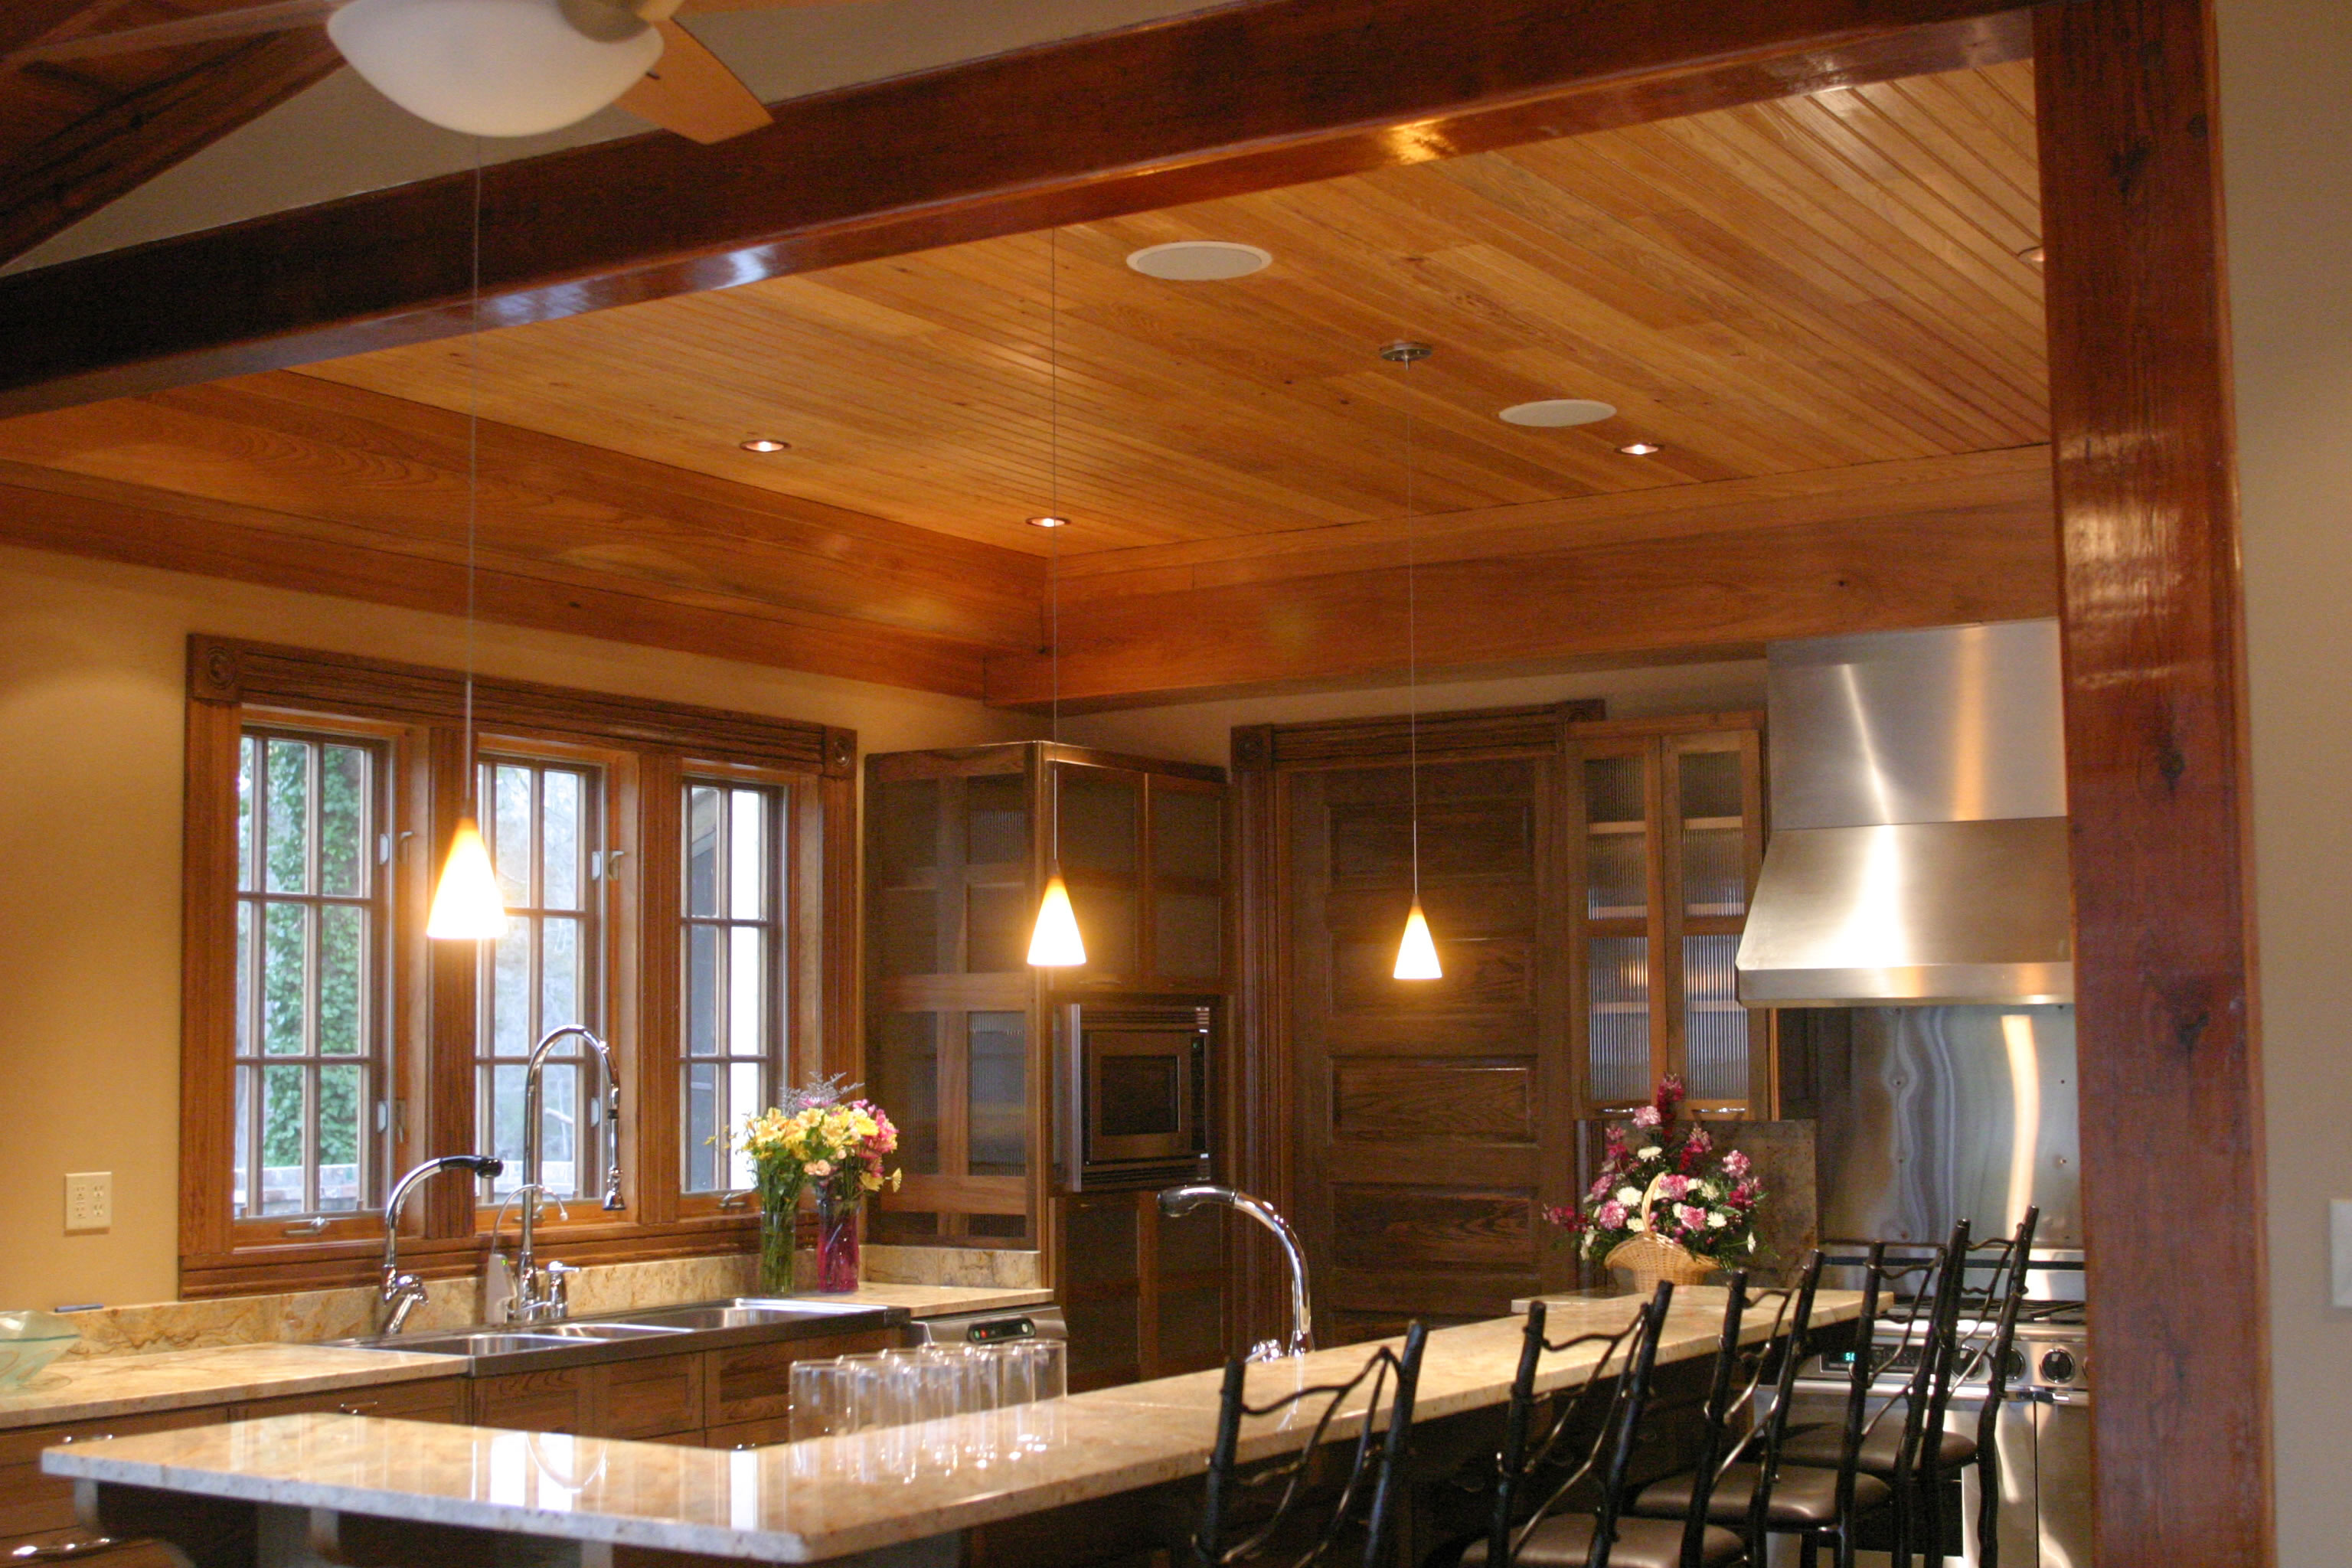 Cypress Ceiling And Cabinetry. Courtesy Acadian Cypress And Hardwoods